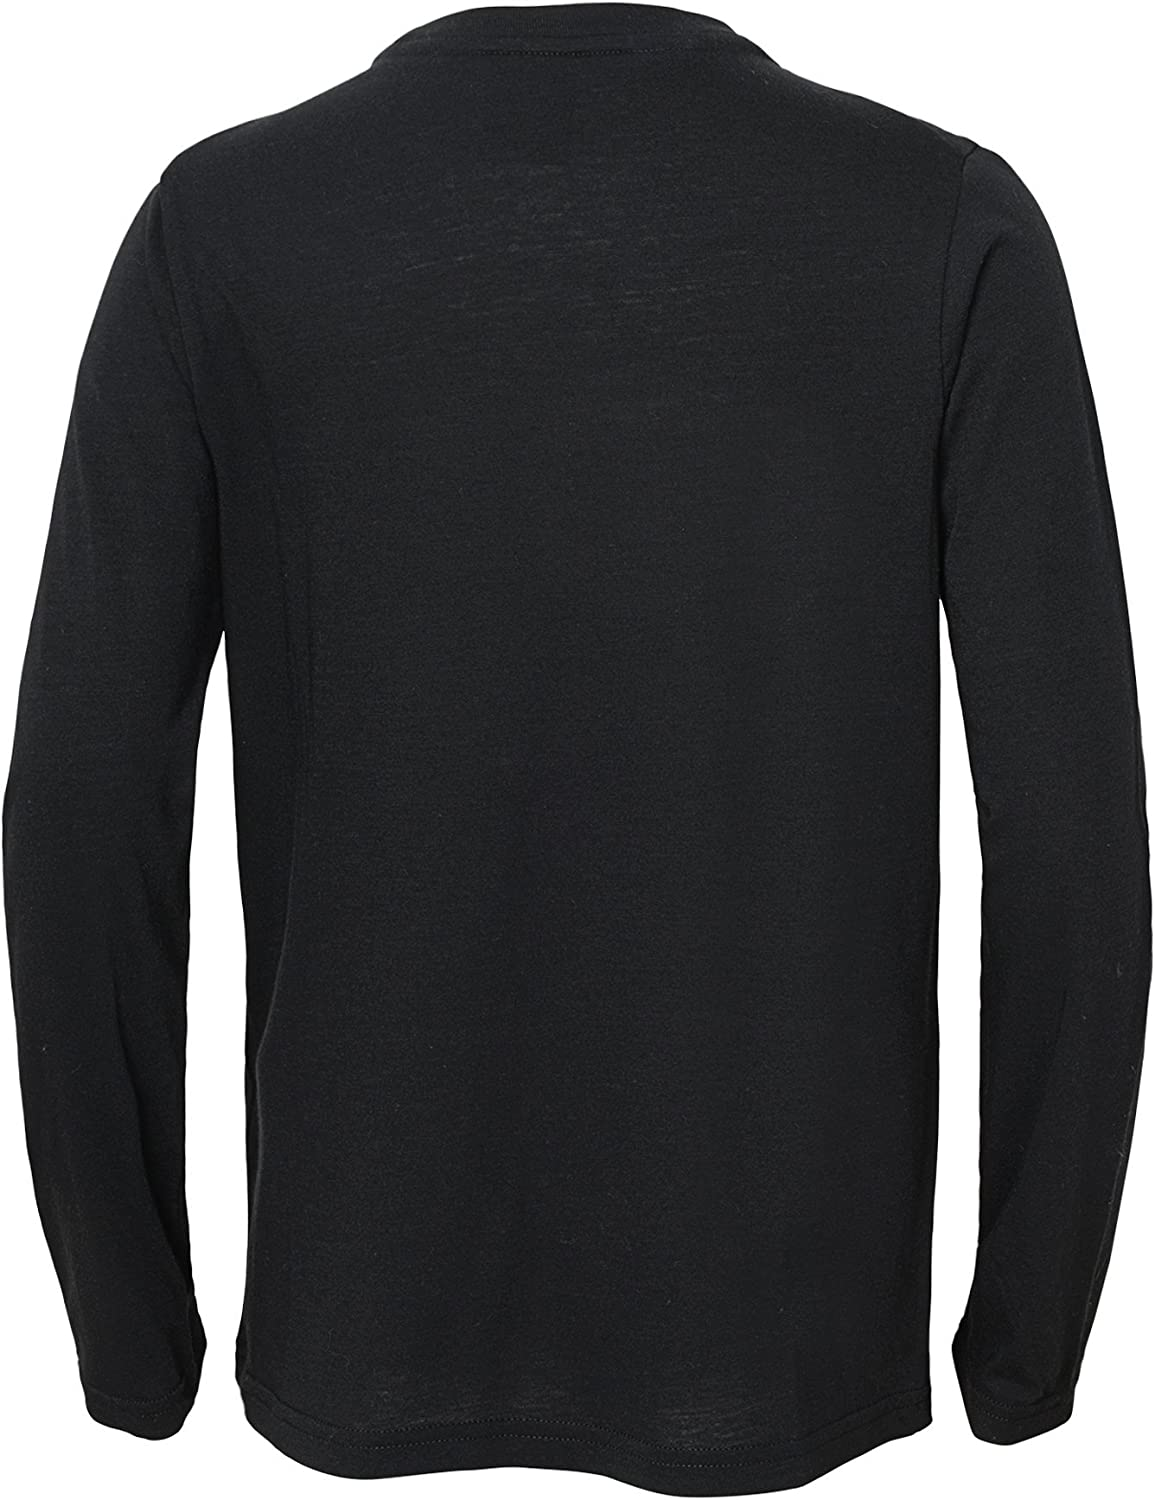 NBA by Outerstuff Boys Big Tactical Ultra Long Sleeve Tee